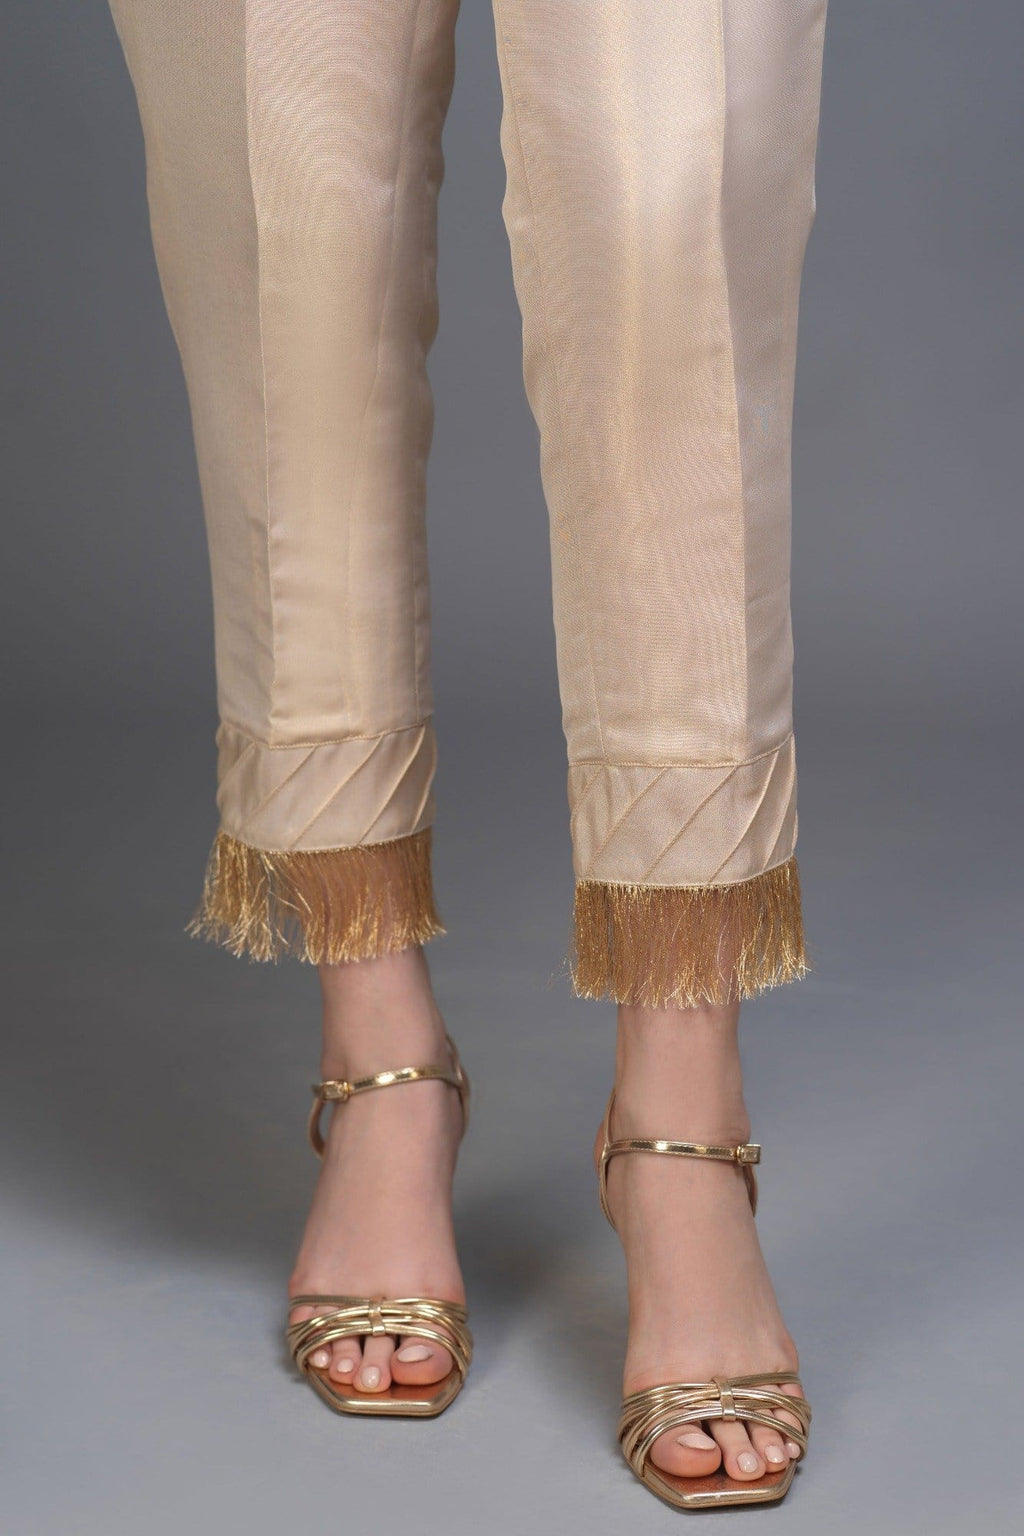 Fray Maysuri Pants